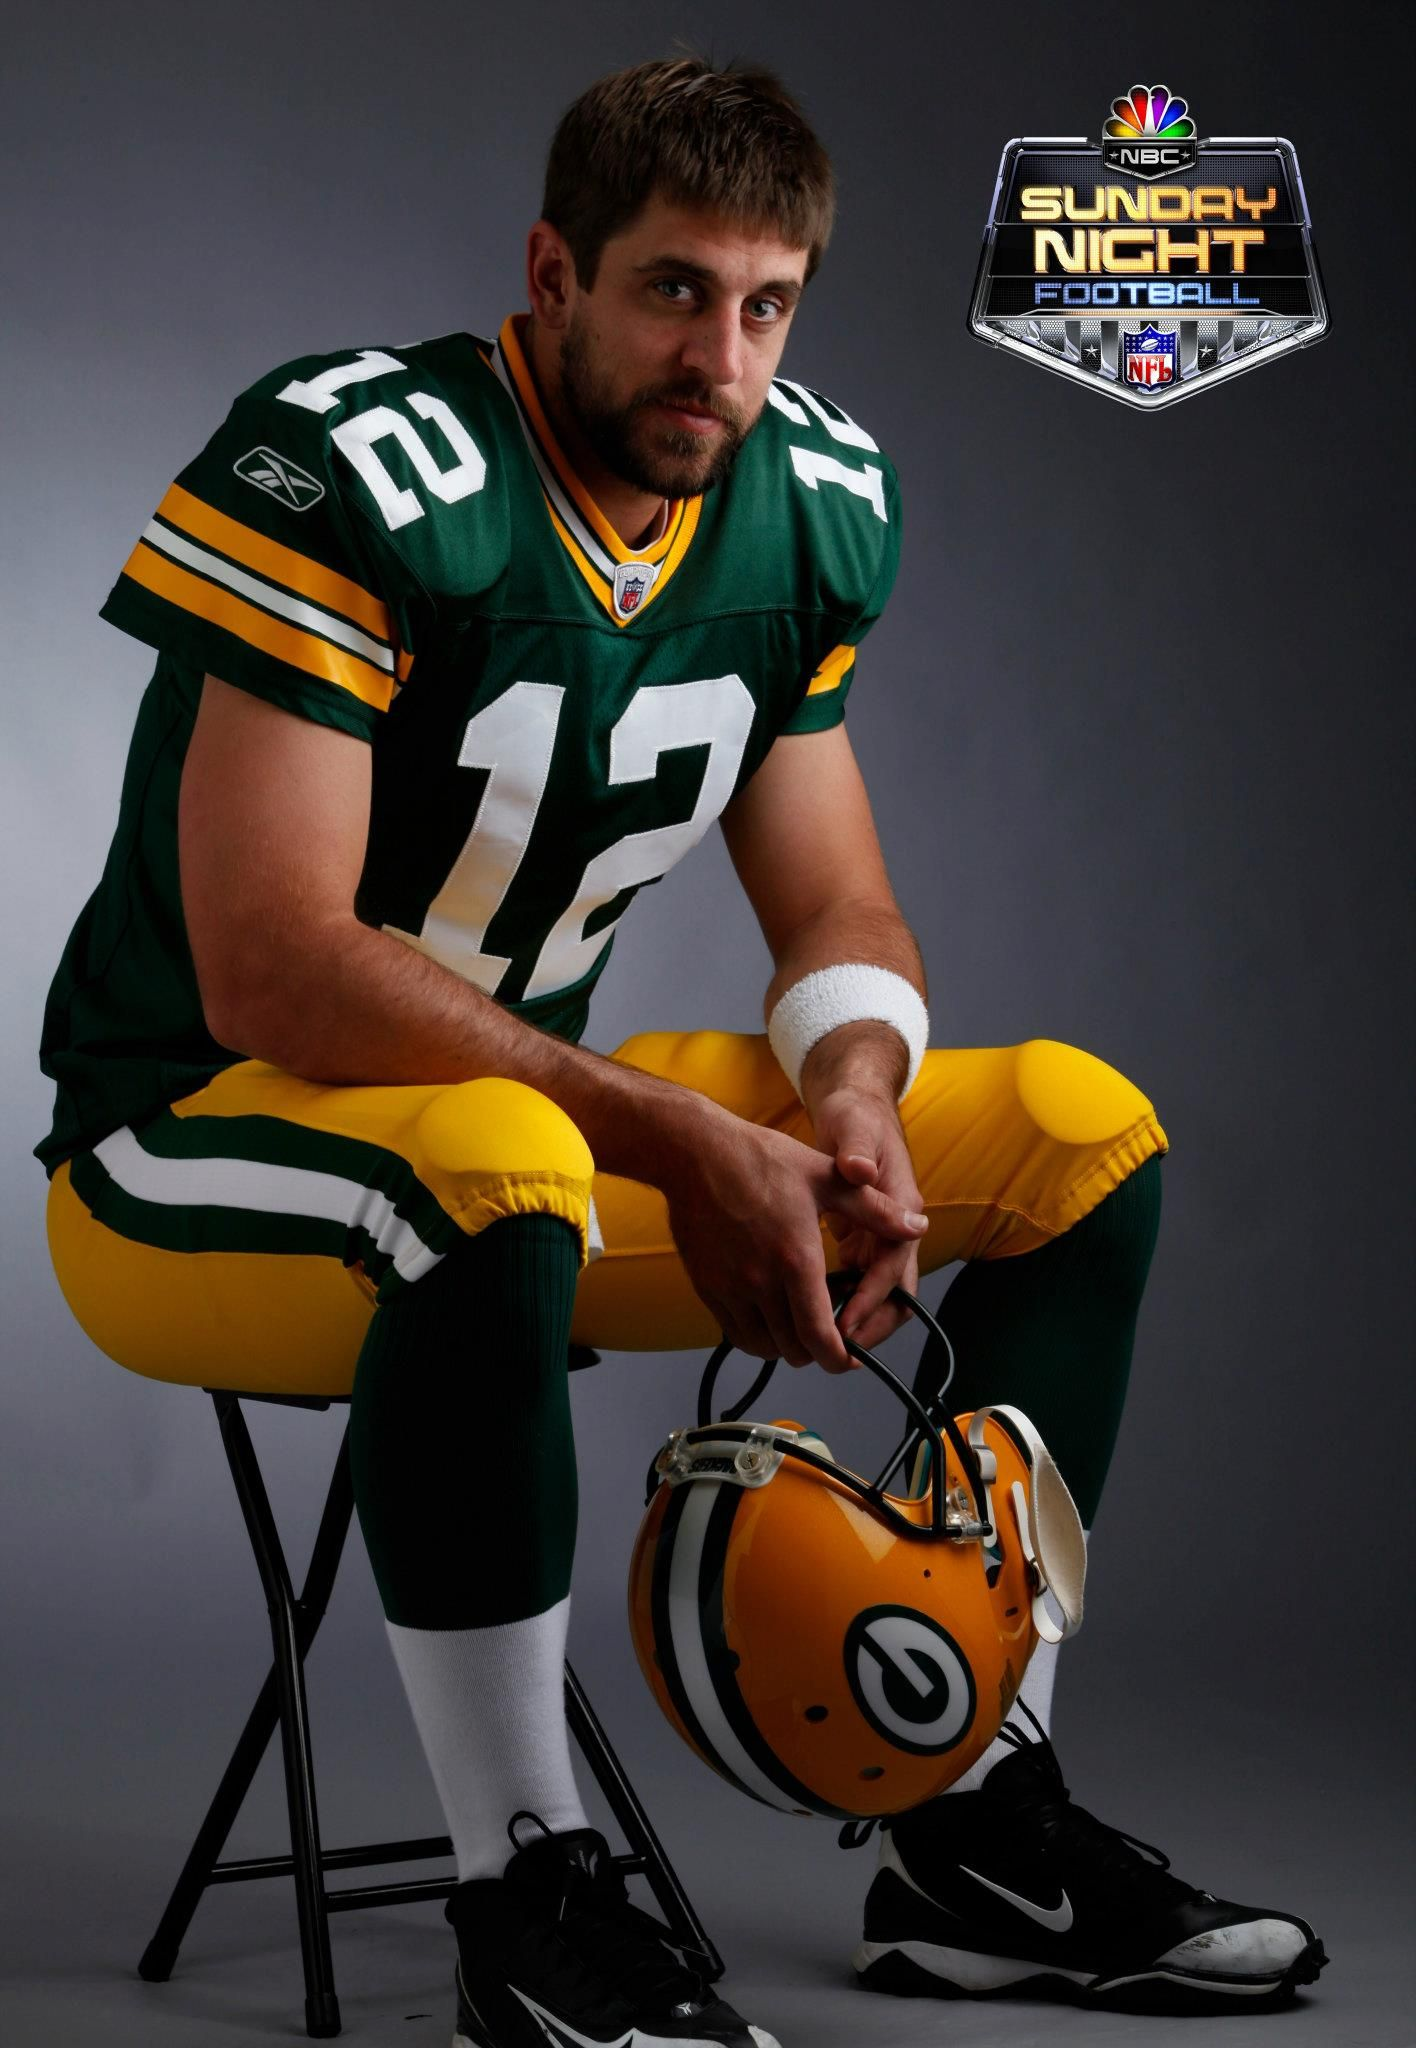 Aaron Rodgers Green Bay Packers Nbc Sports Edward Rieker Tags Sunday Night Football On Nbc Green Bay Packers Team Green Packers Rodgers Green Bay